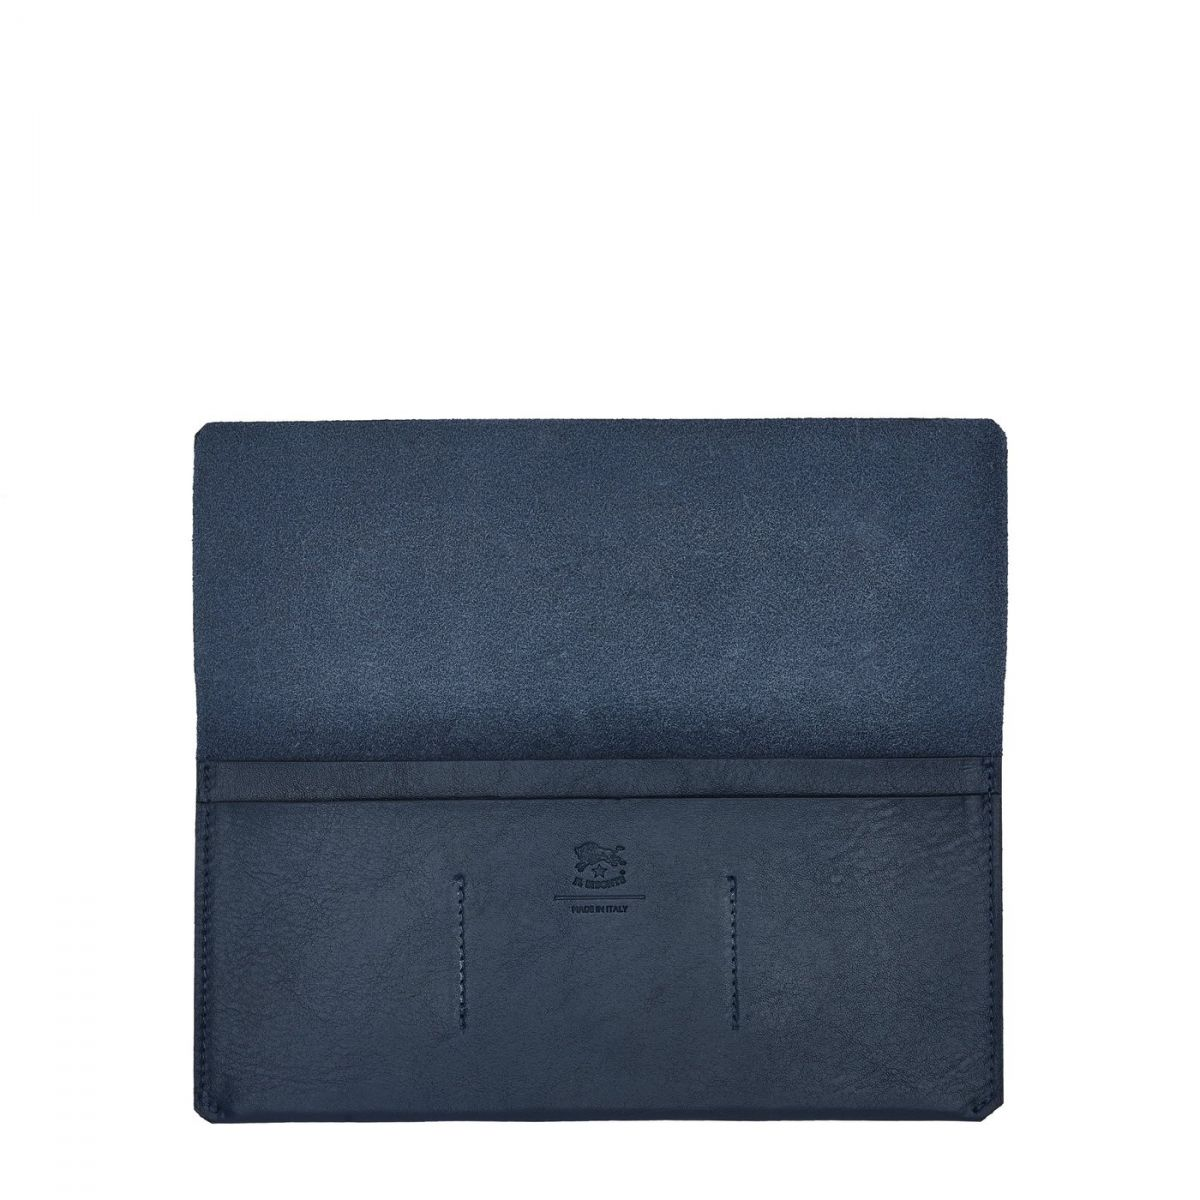 Bi-Fold Wallet  in Cowhide Leather SBW043 color Blue | Details